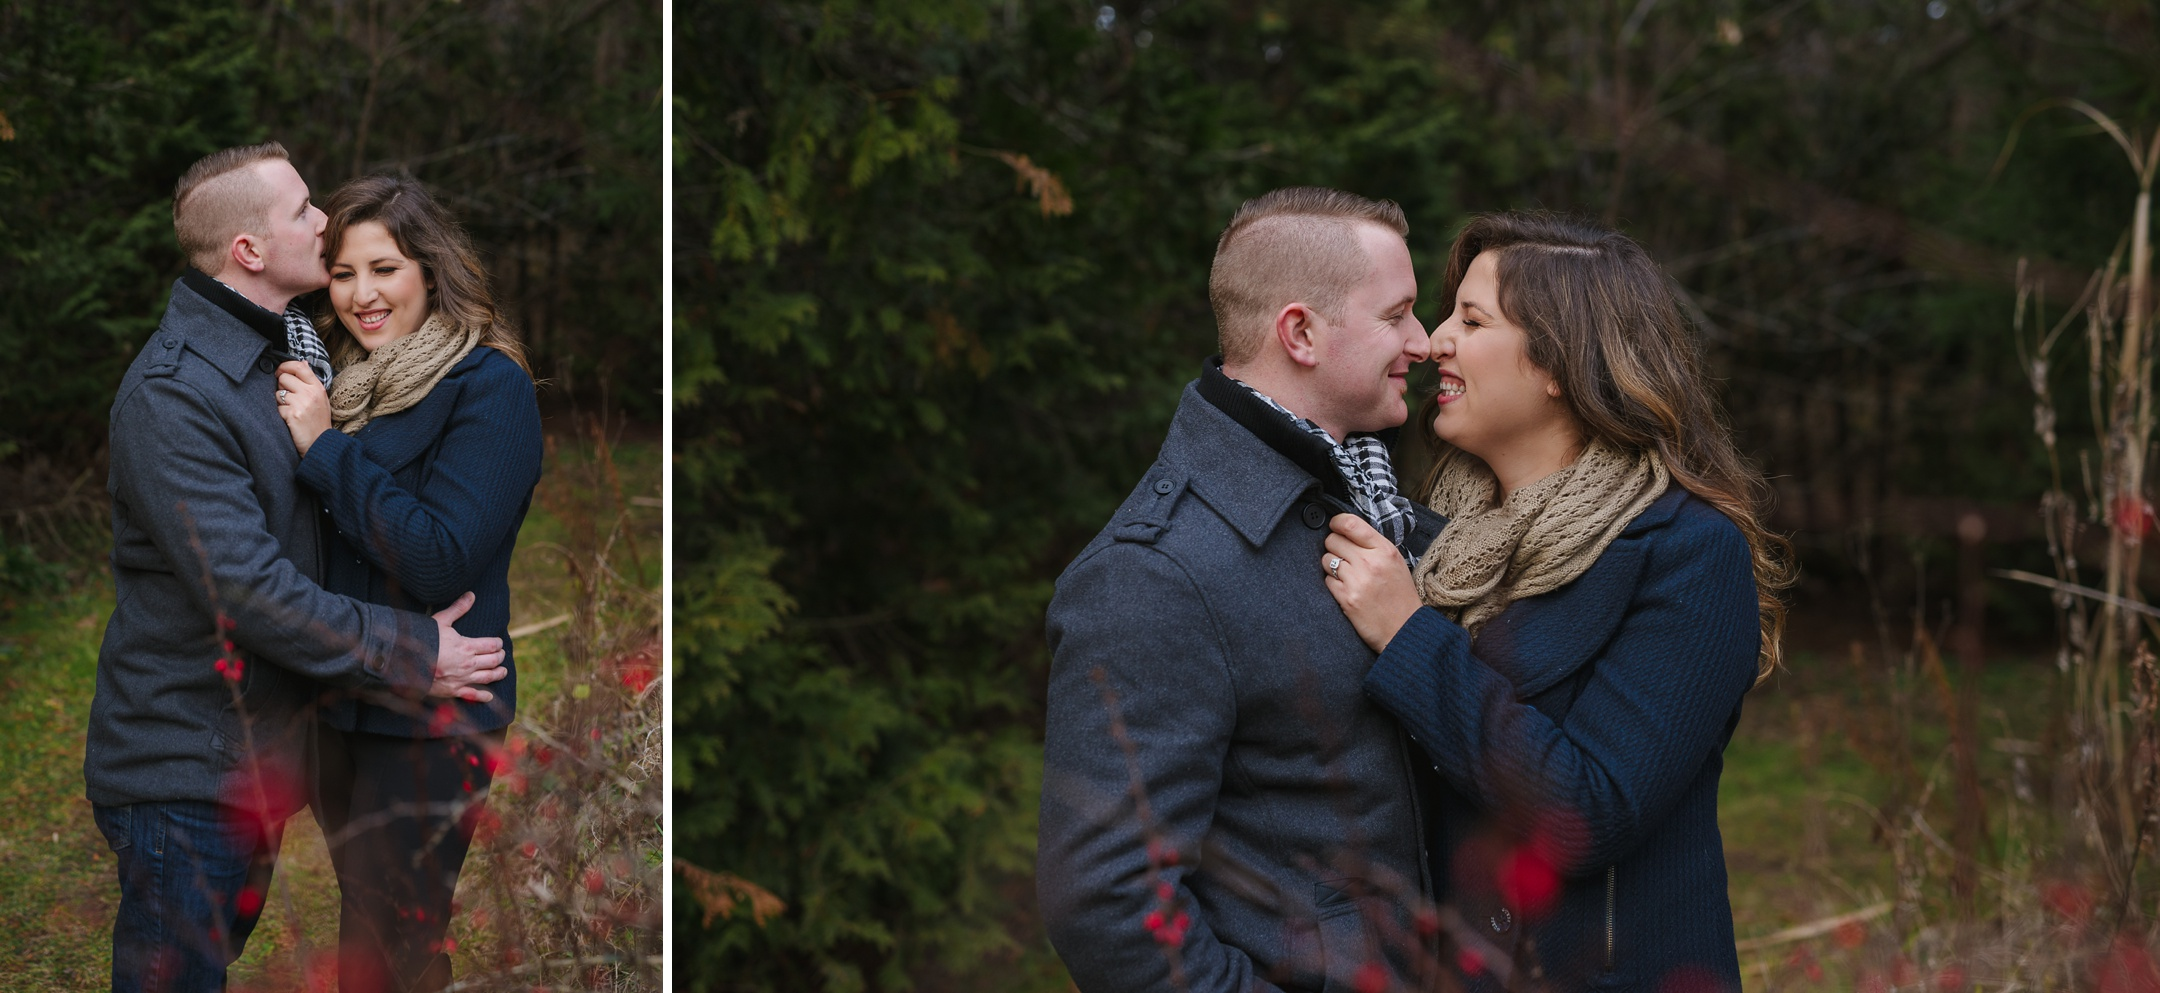 Durham Region, Whitby Engagement Session in the woods, cute couple in the forest